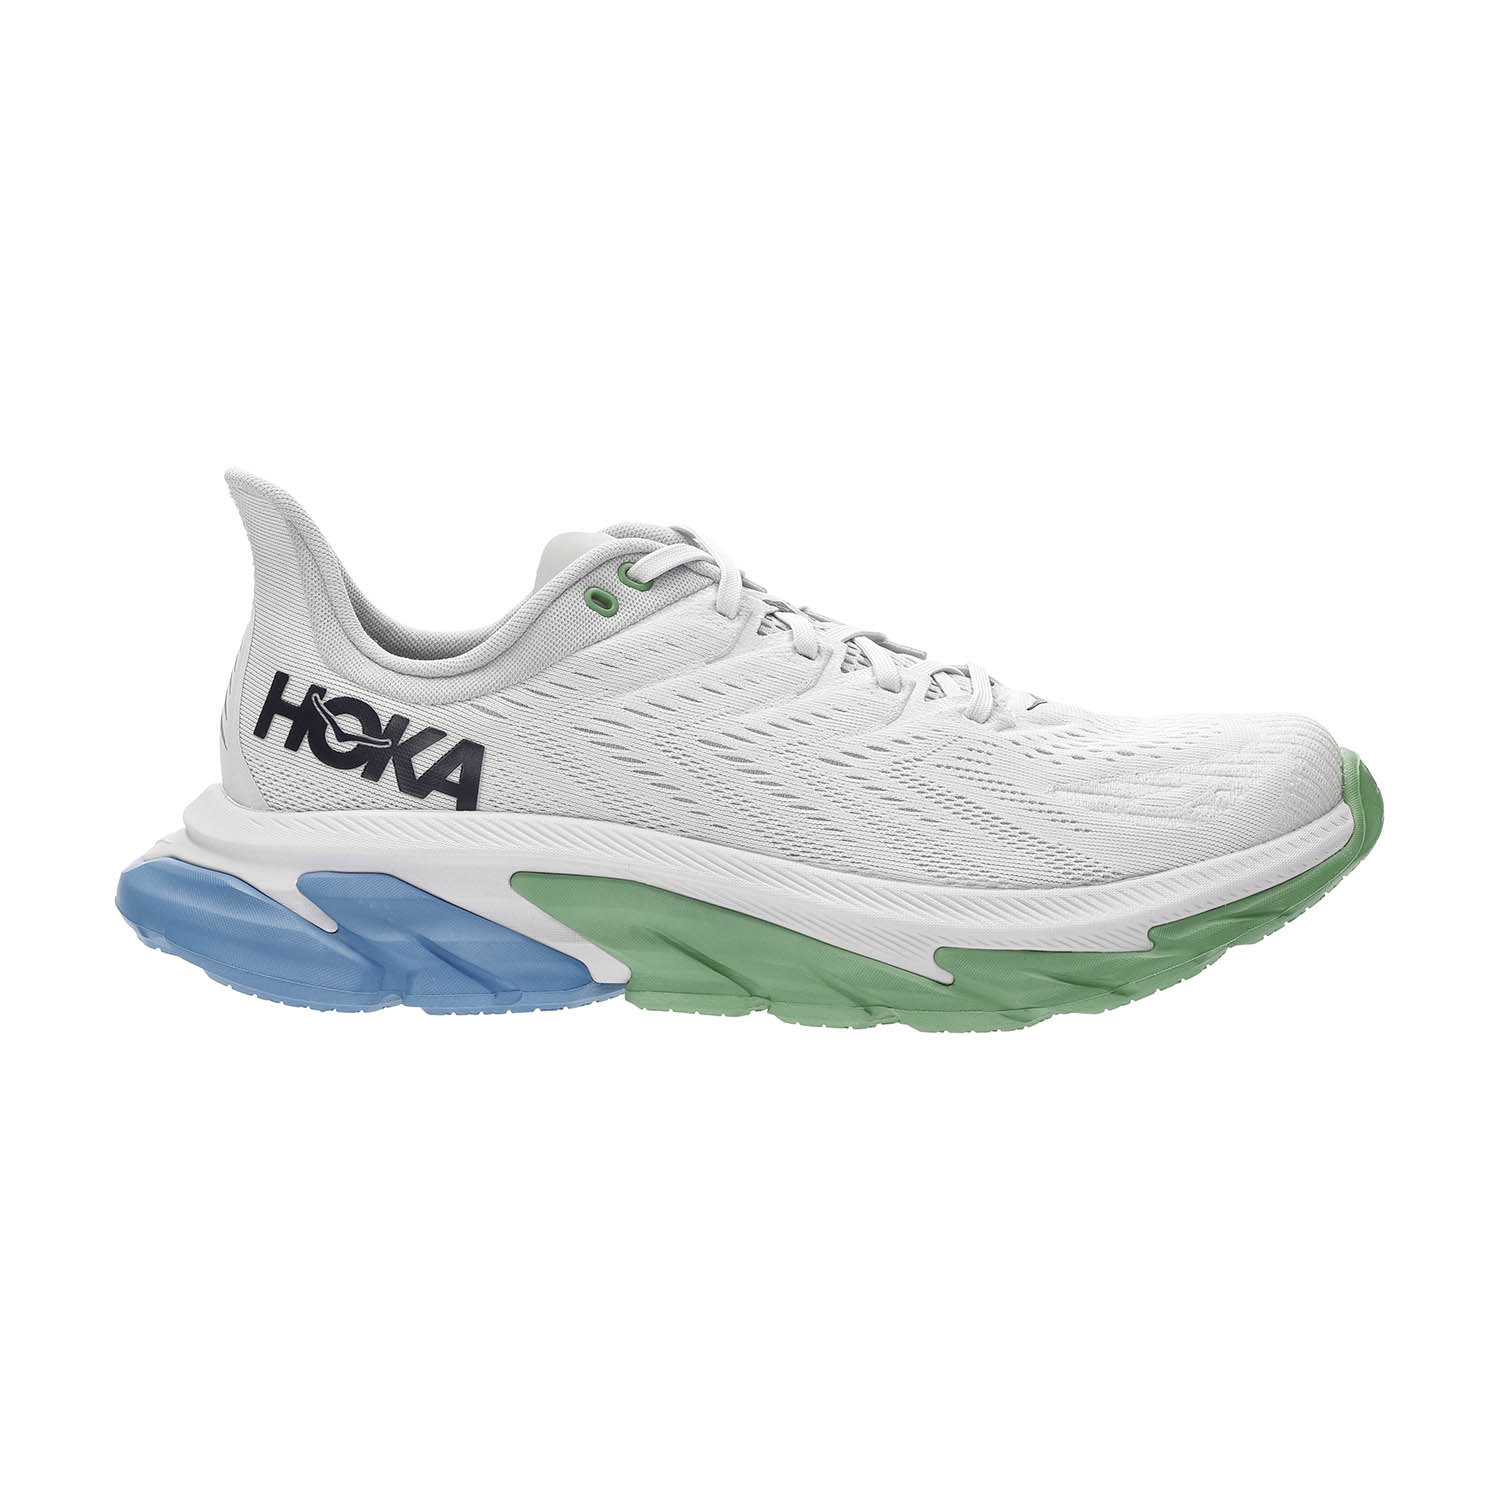 Hoka One One Clifton Edge - Nimbus Cloud/Green Briar